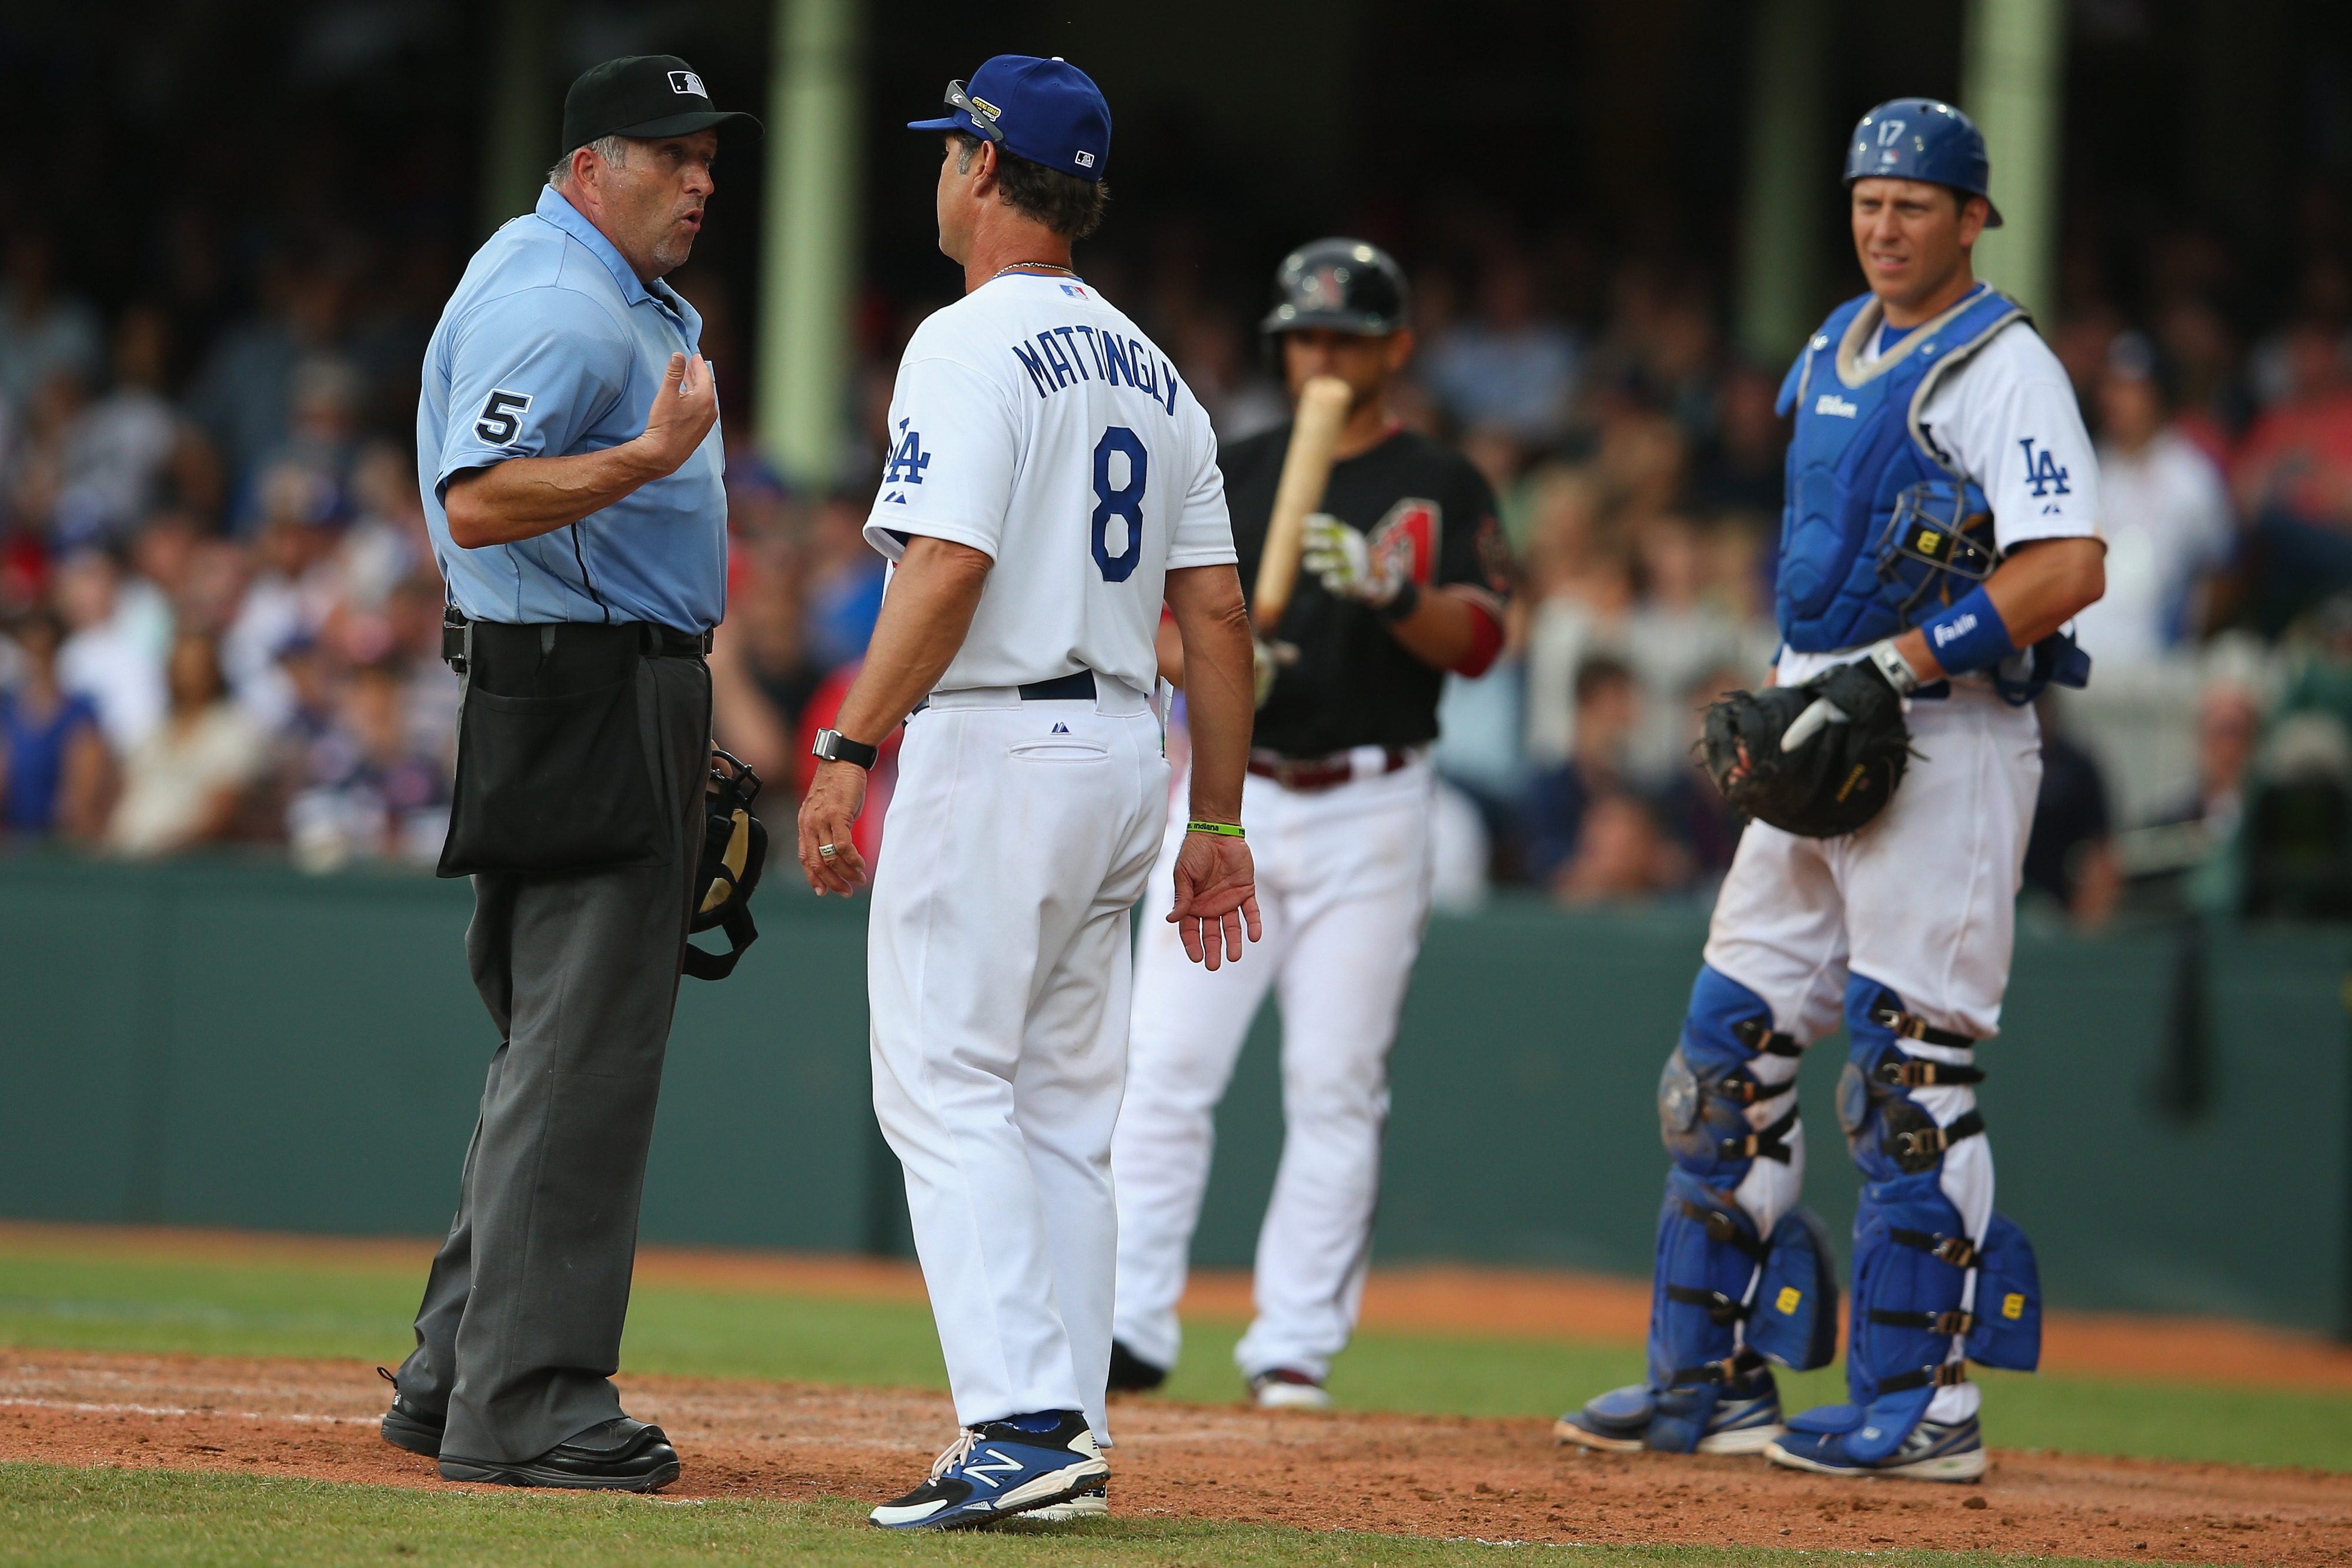 Dale Scott, seen here with Don Mattingly in March in Sydney, is the crew chief for the NLDS umpiring crew for the Dodgers-Cardinals series.